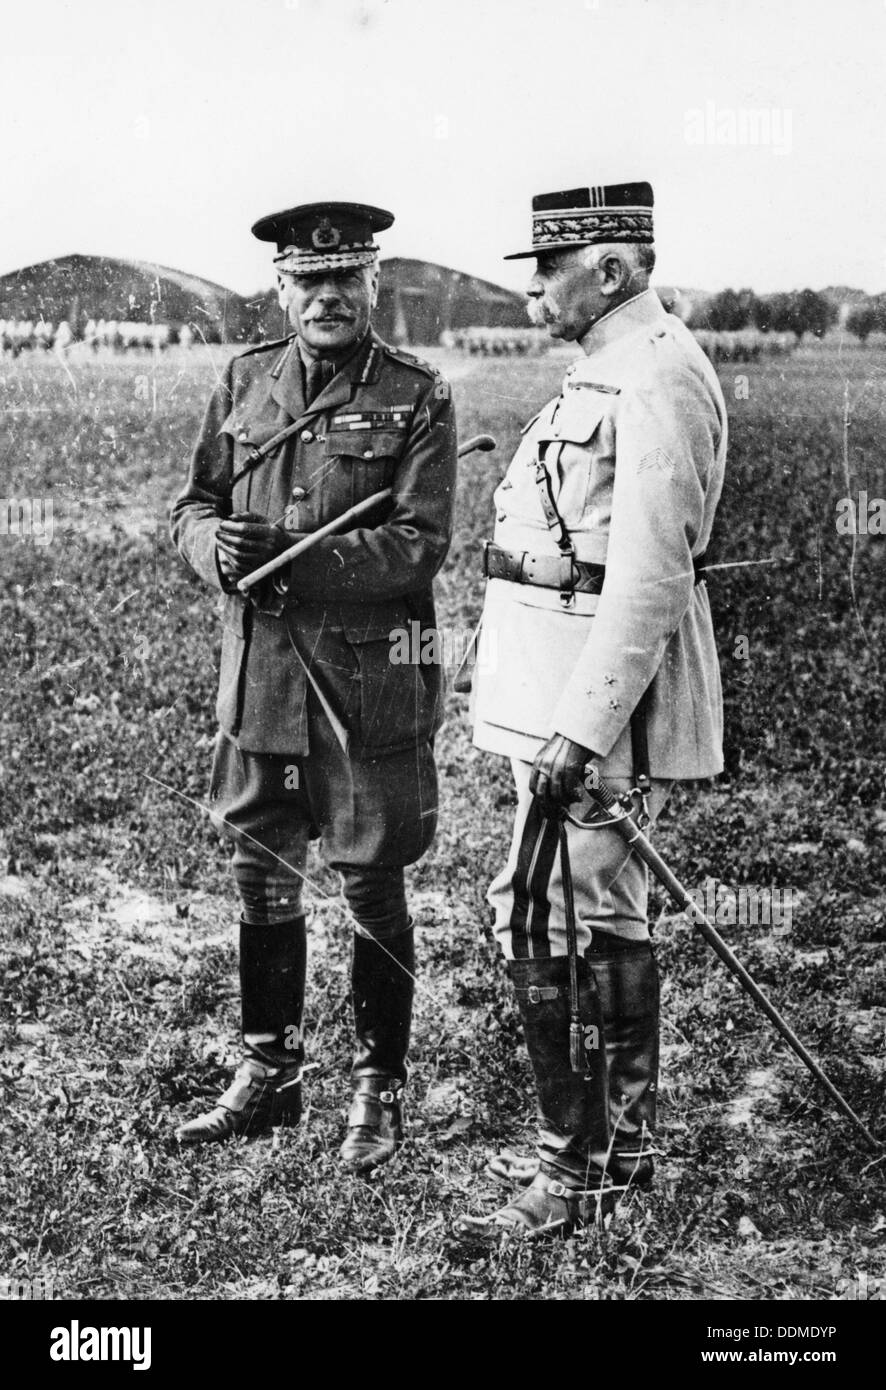 Field Marshal Sir Douglas Haig and General Francois Anthoine, WWI, c1914-c1918. - Stock Image